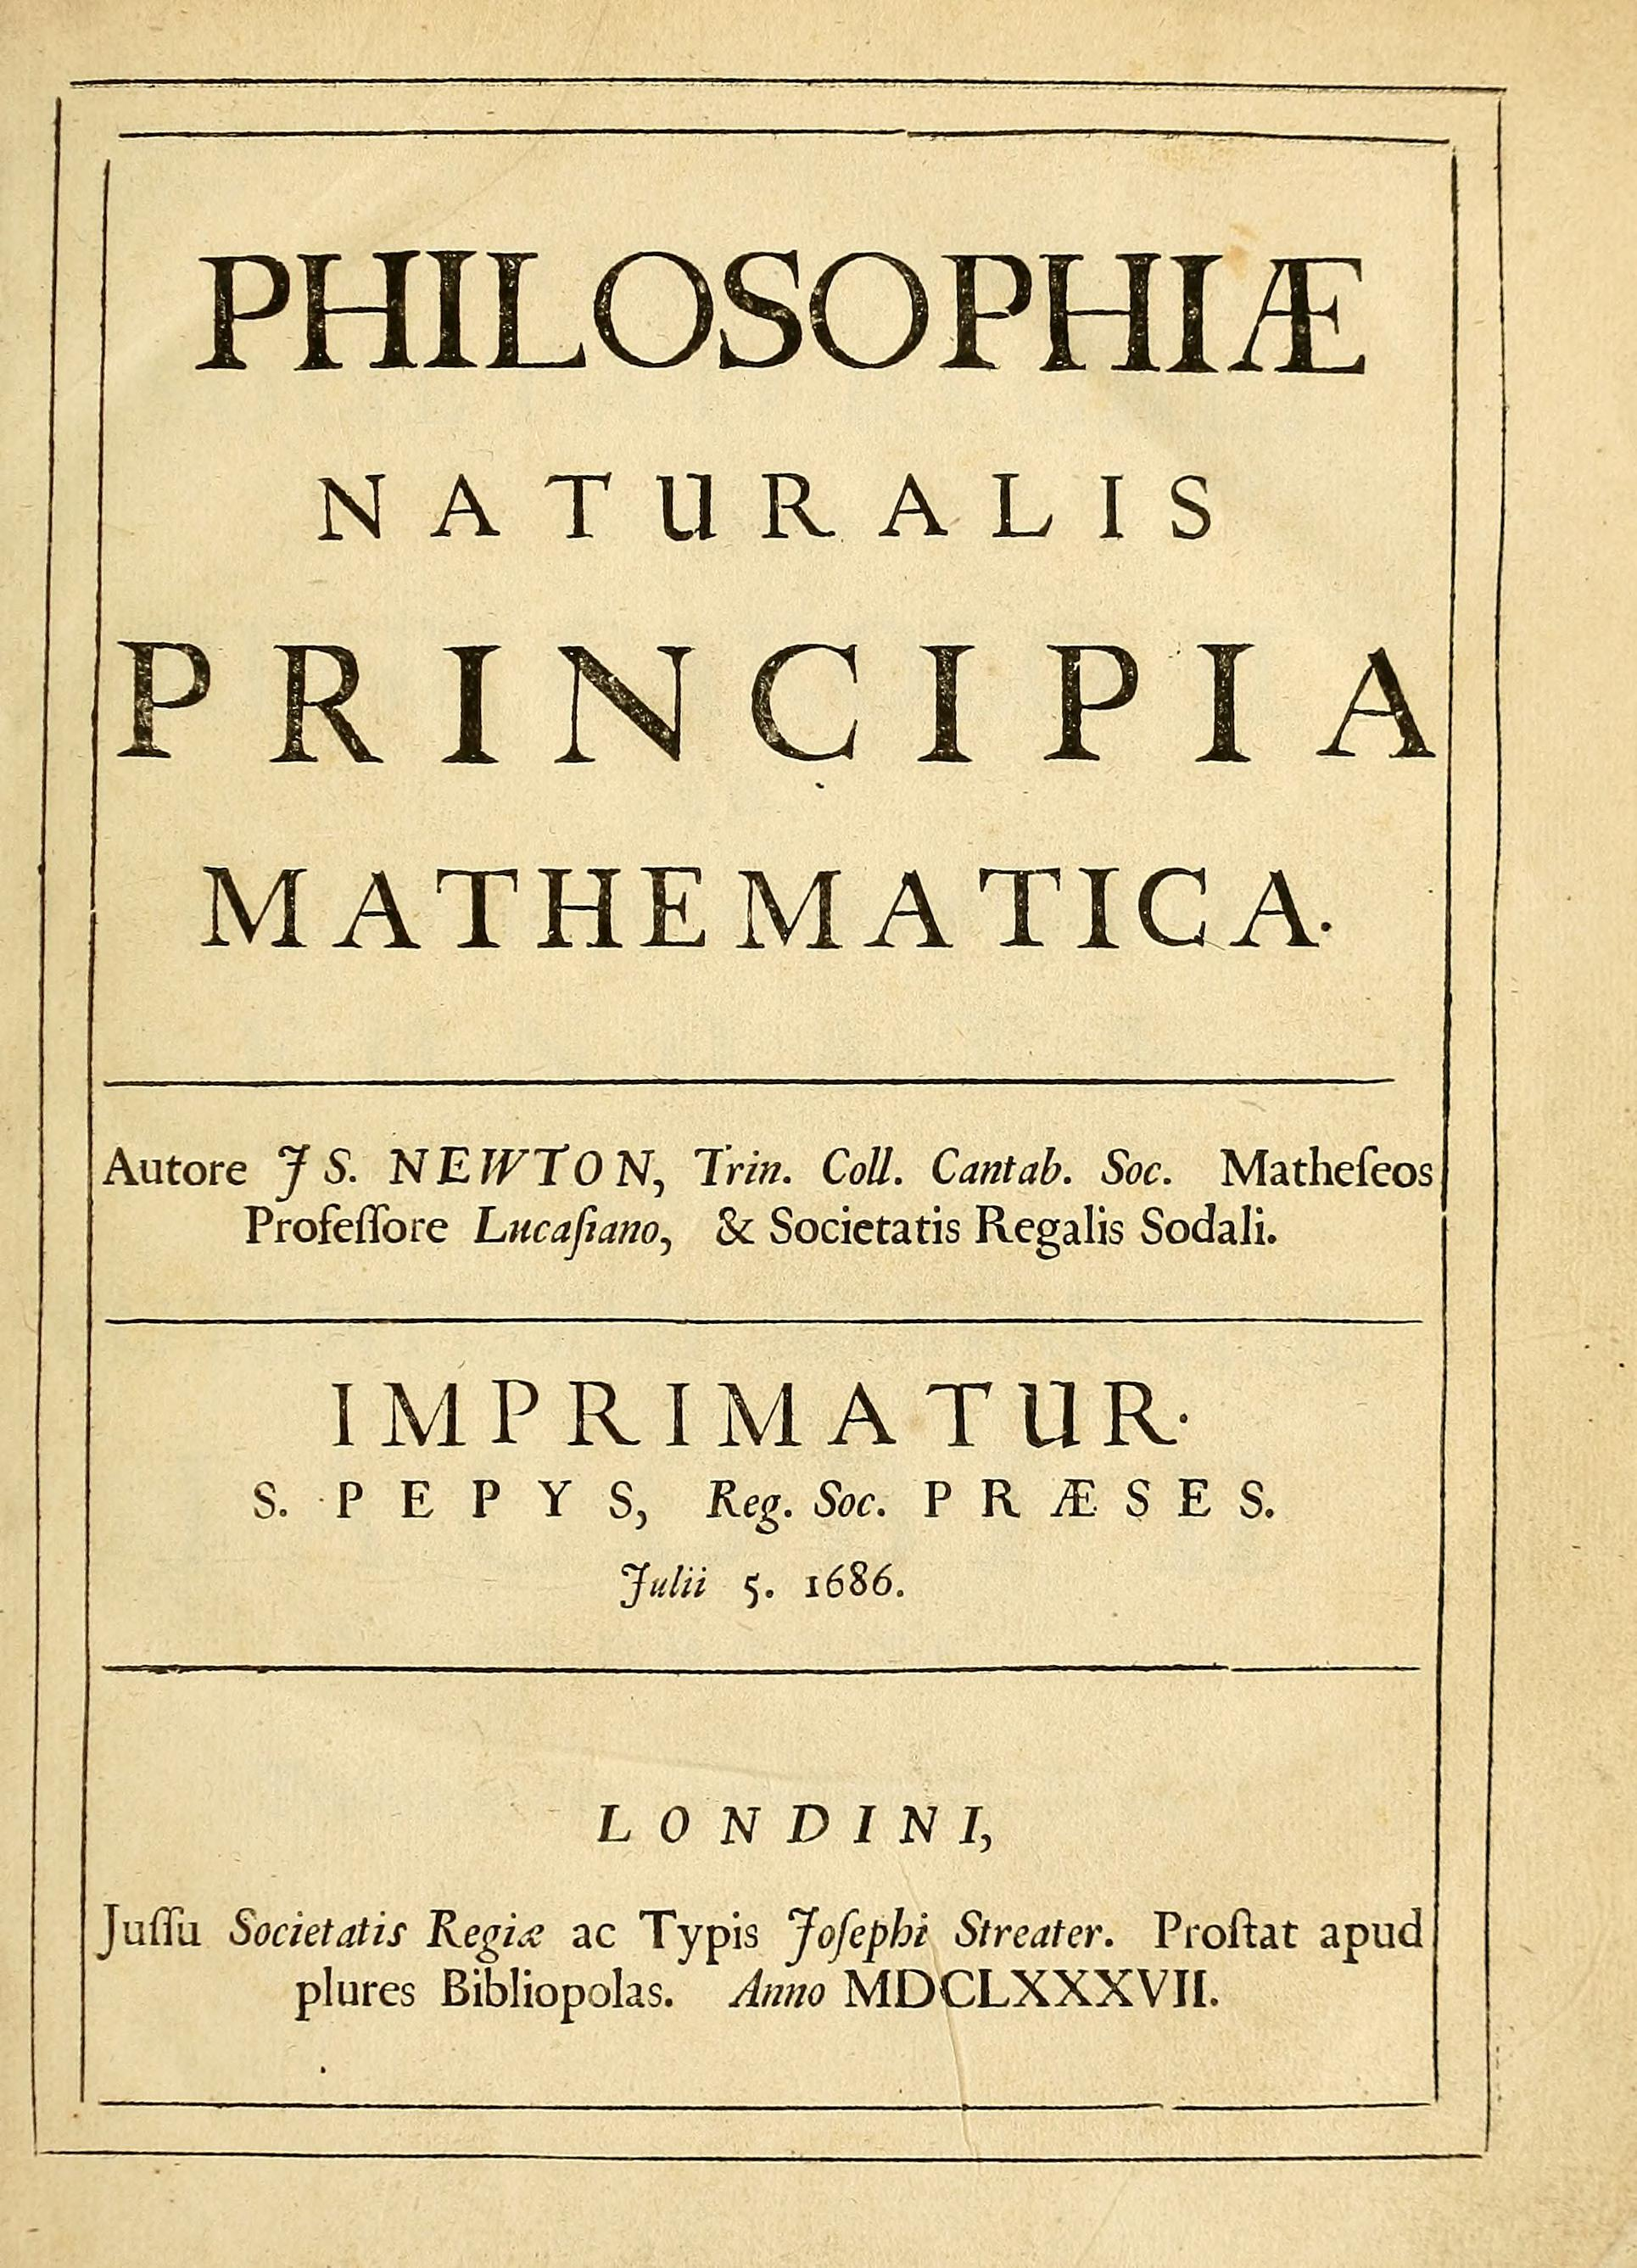 """""""The  Principia  states  Newton's laws of motion , forming the foundation of  classical mechanics ;  Newton's law of universal gravitation ; and a derivation of  Kepler's laws of planetary motion  (which  Kepler  first obtained  empirically ). The  Principia  is considered one of the most important works in the history of science.""""\(^{[5]}\)"""